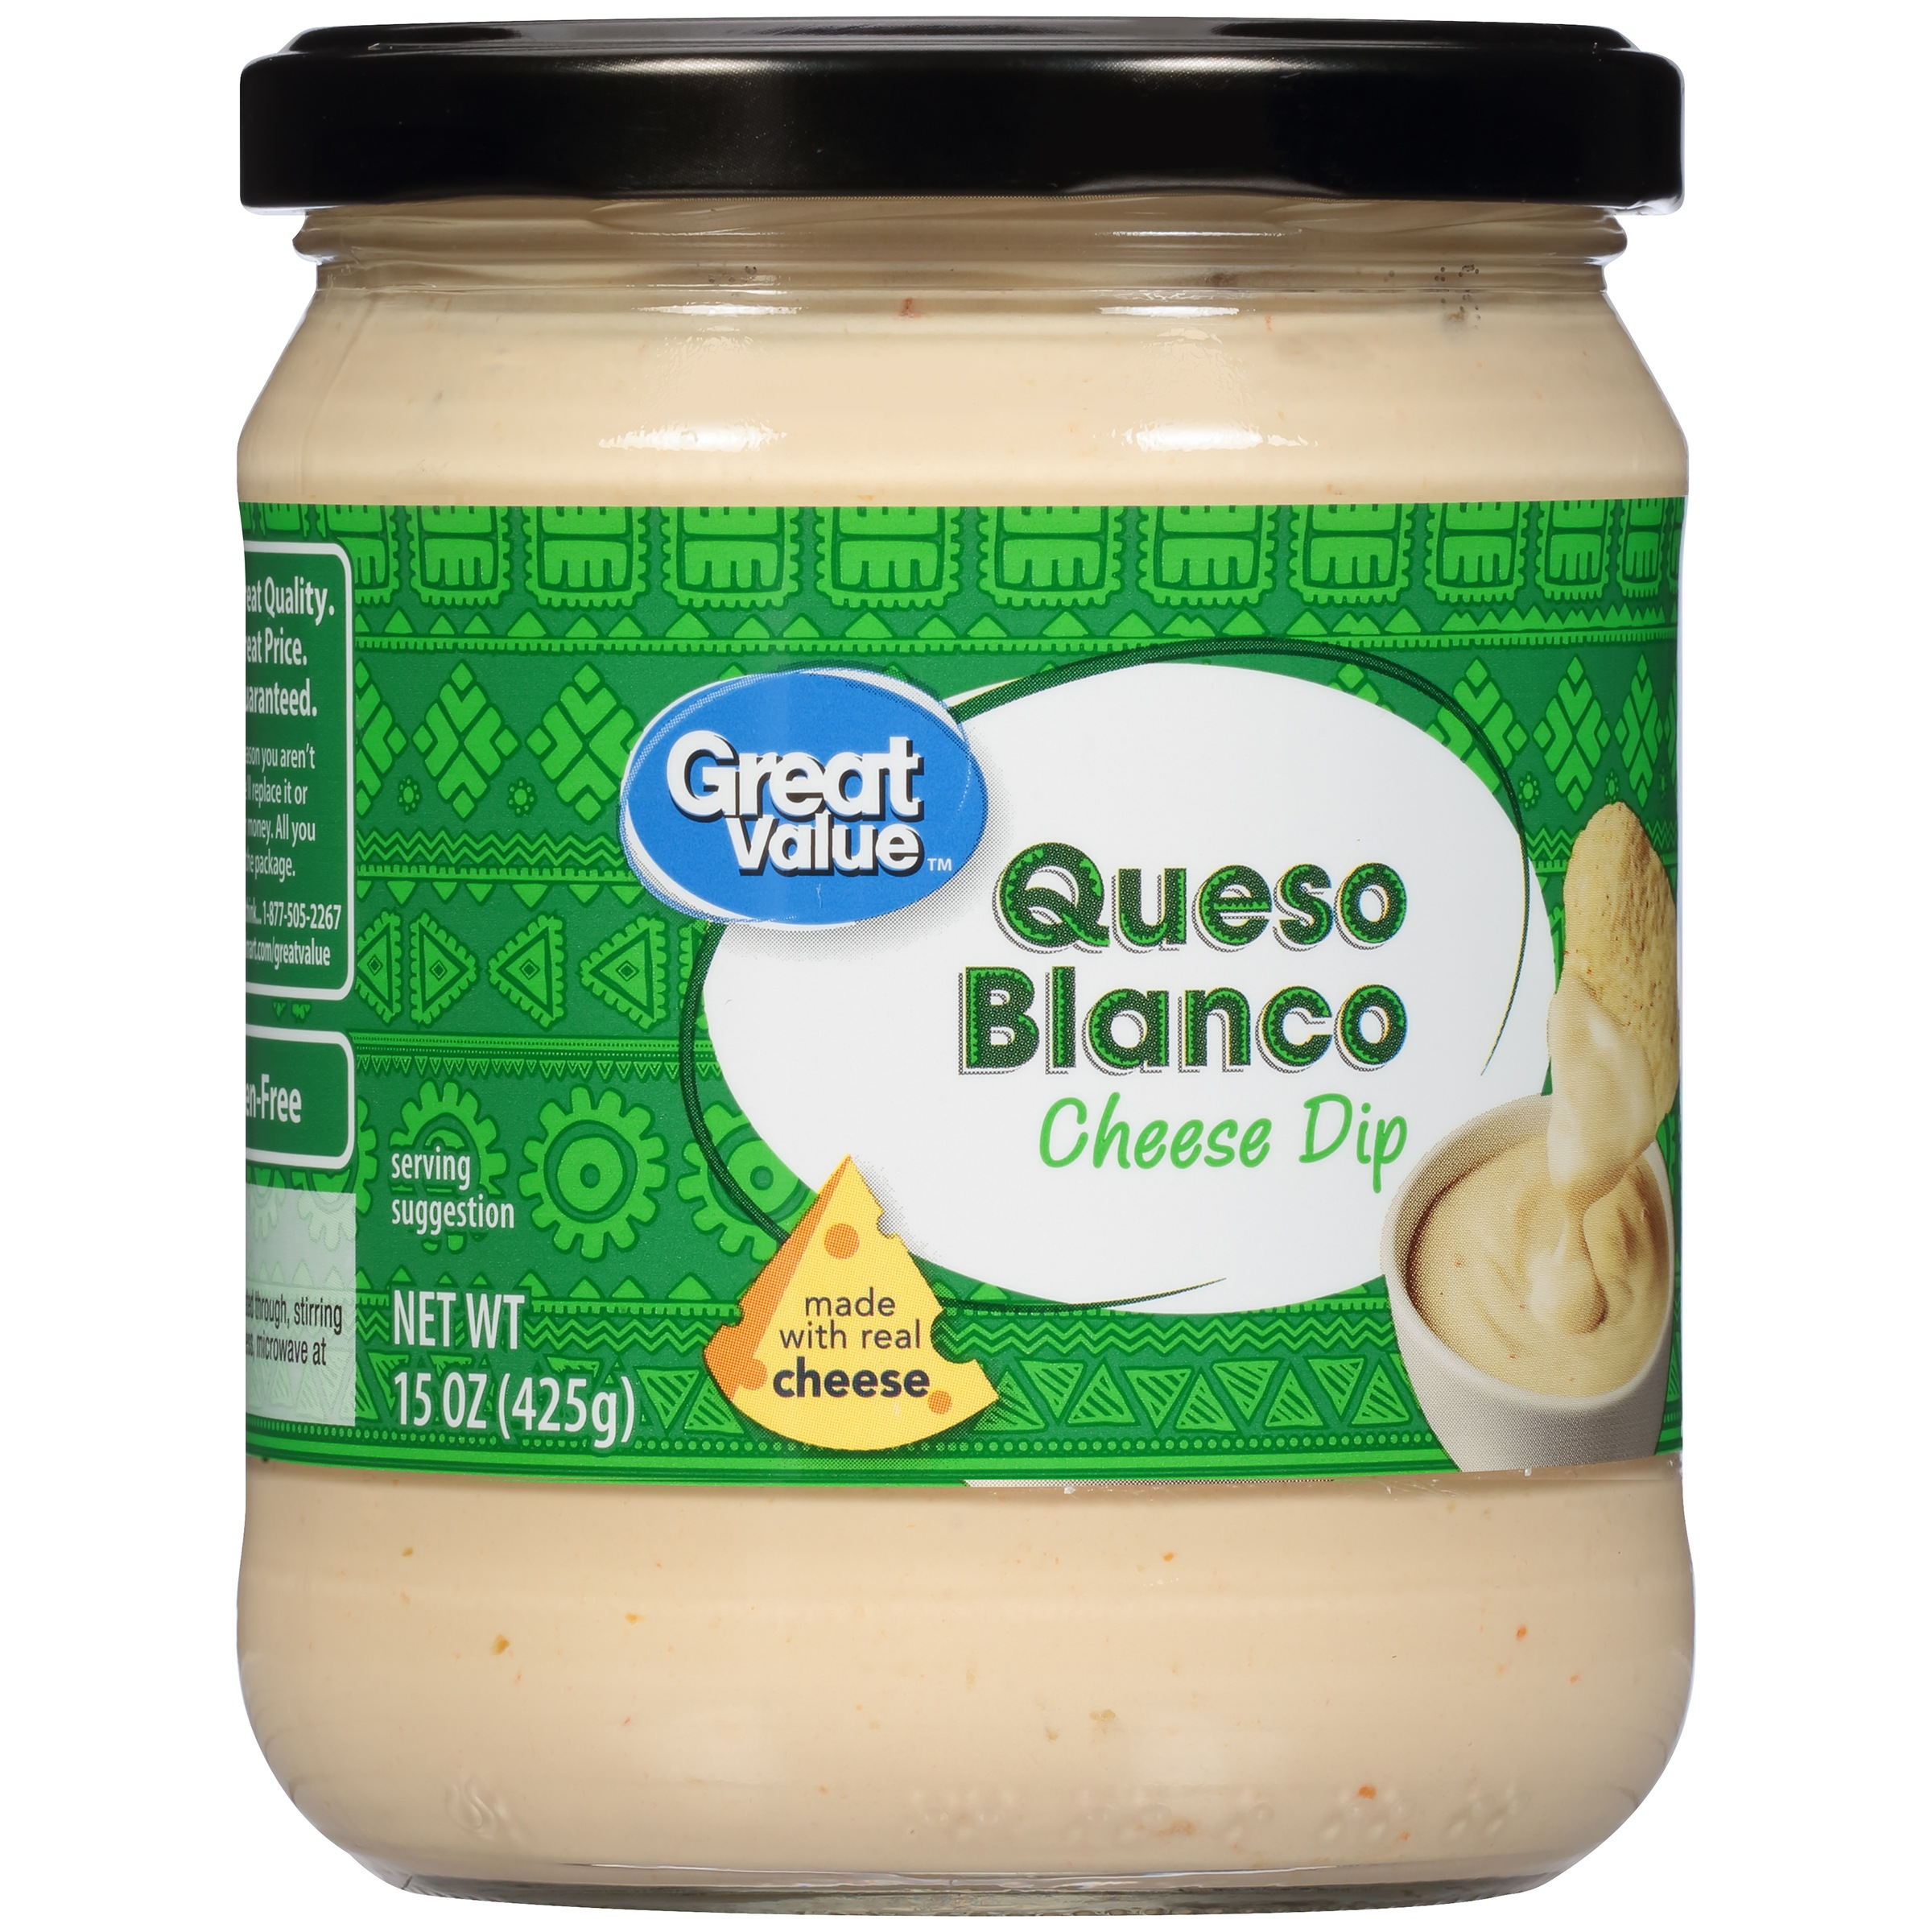 Great Value Queso Blanco Cheese Dip, 15 oz